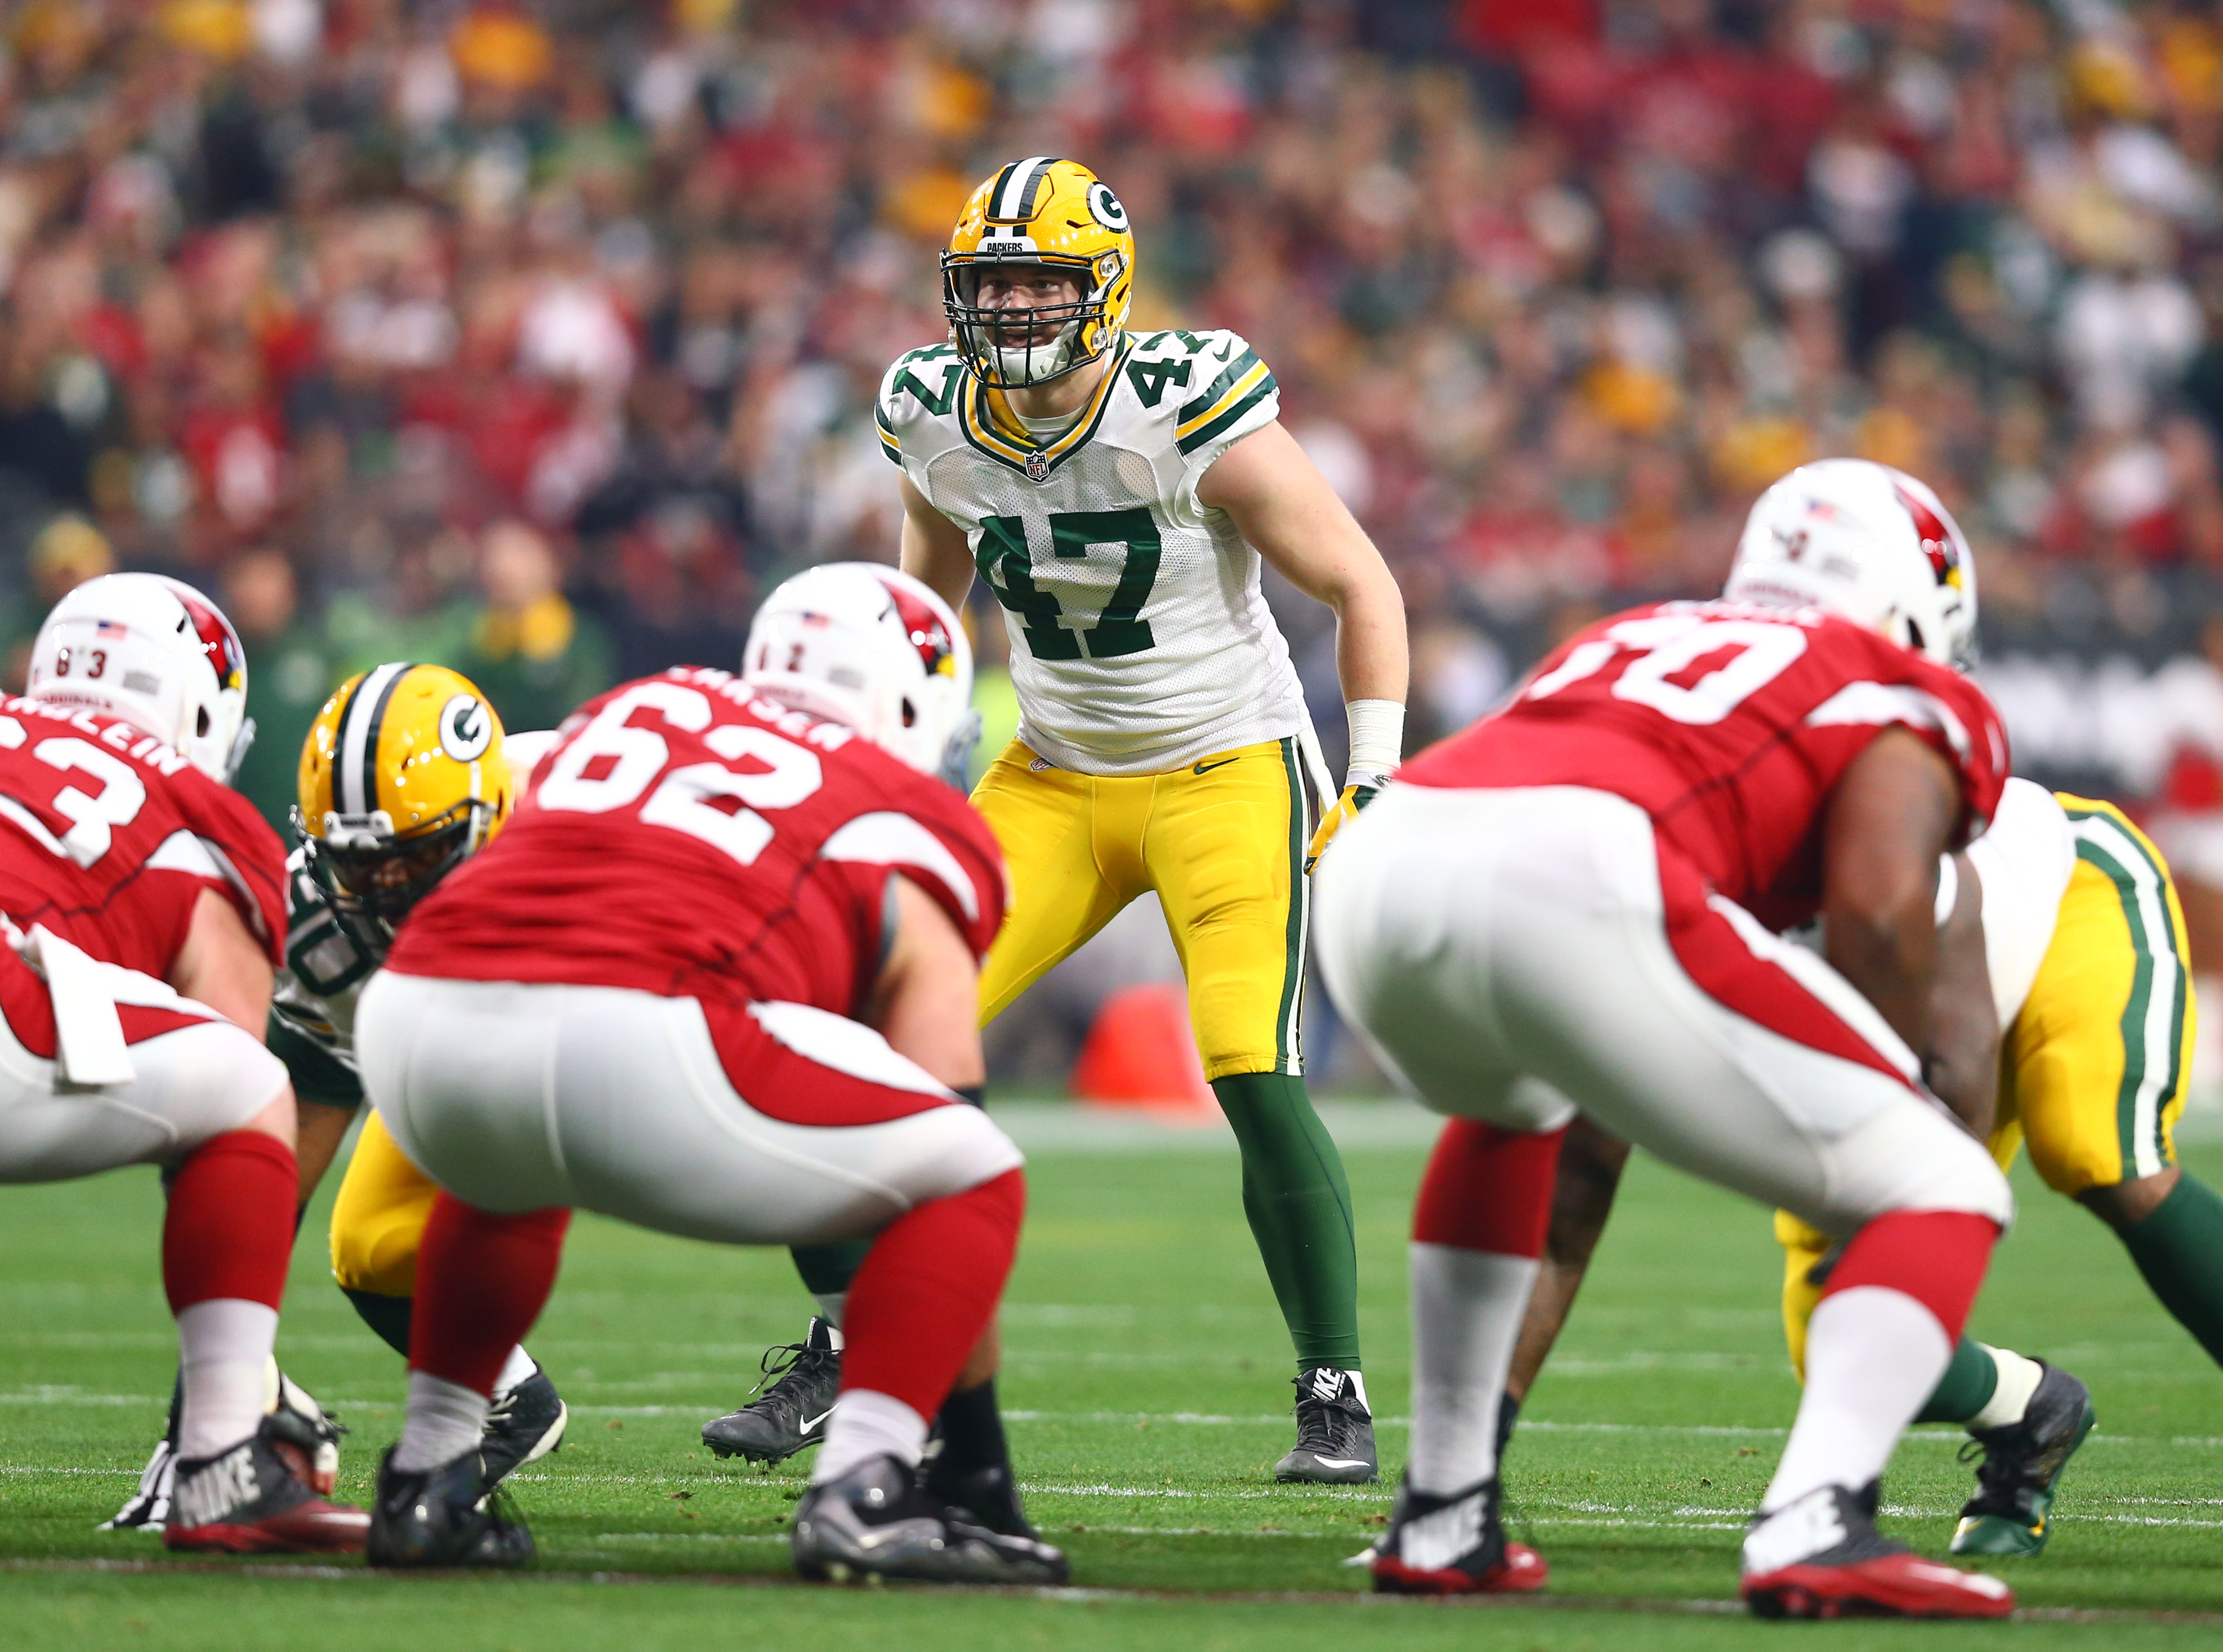 9030926-nfl-green-bay-packers-at-arizona-cardinals